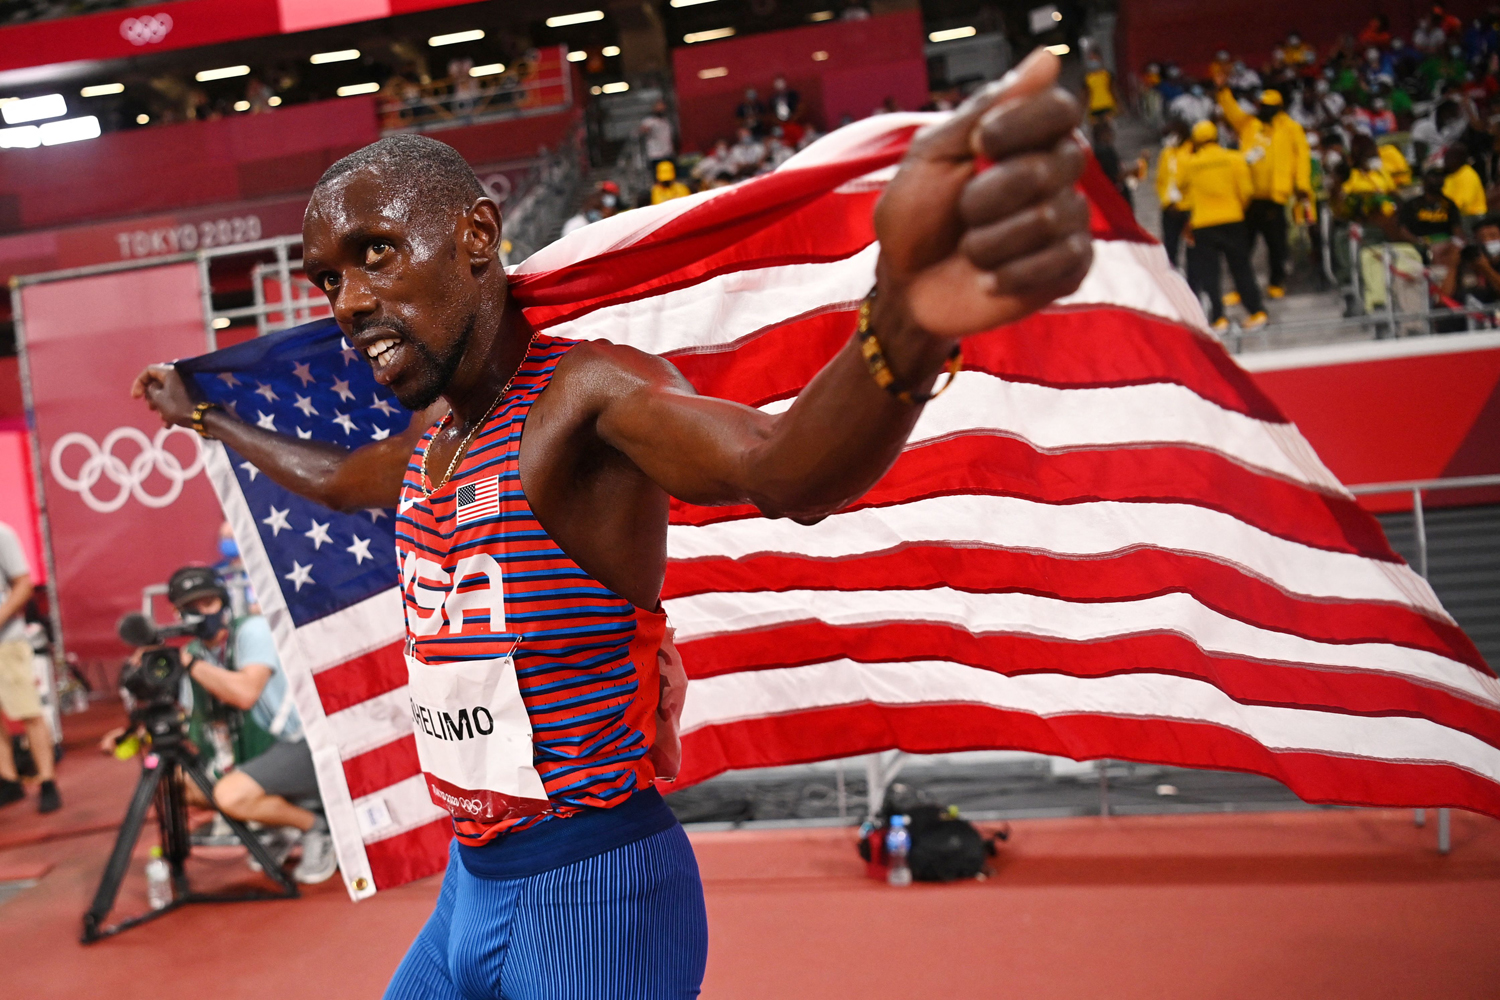 USA's Paul Chelimo celebrates with the national flag after winning the bronze medal in the men's 5000m final